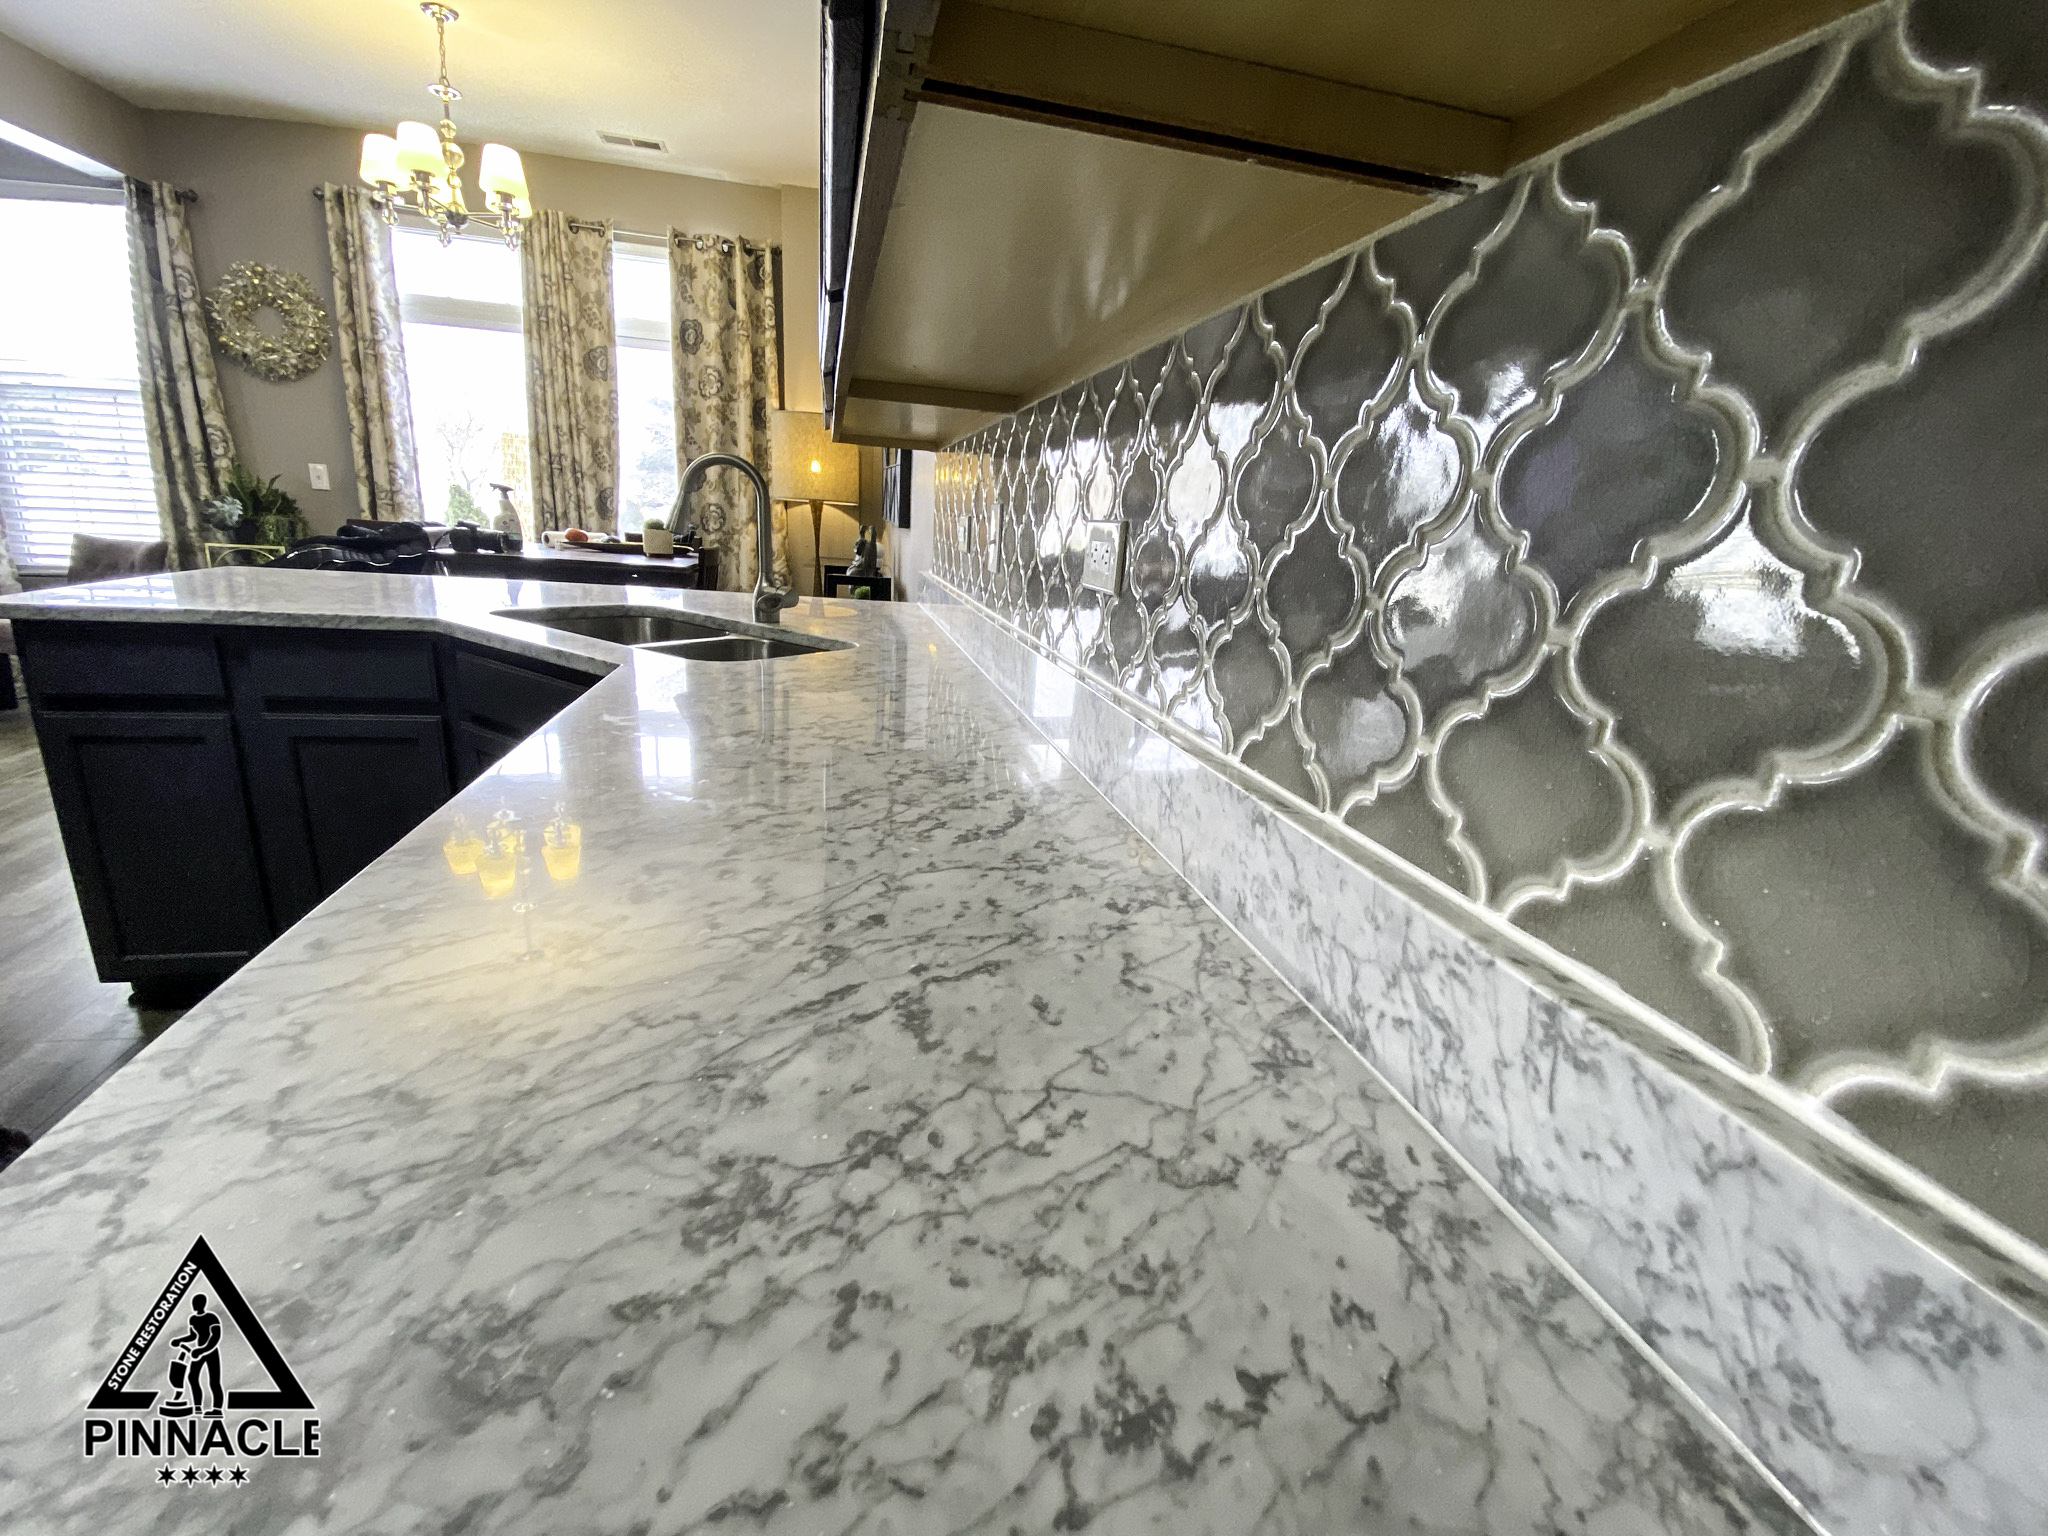 How to take care of white marble countertop? – Maintenance and restoration tips